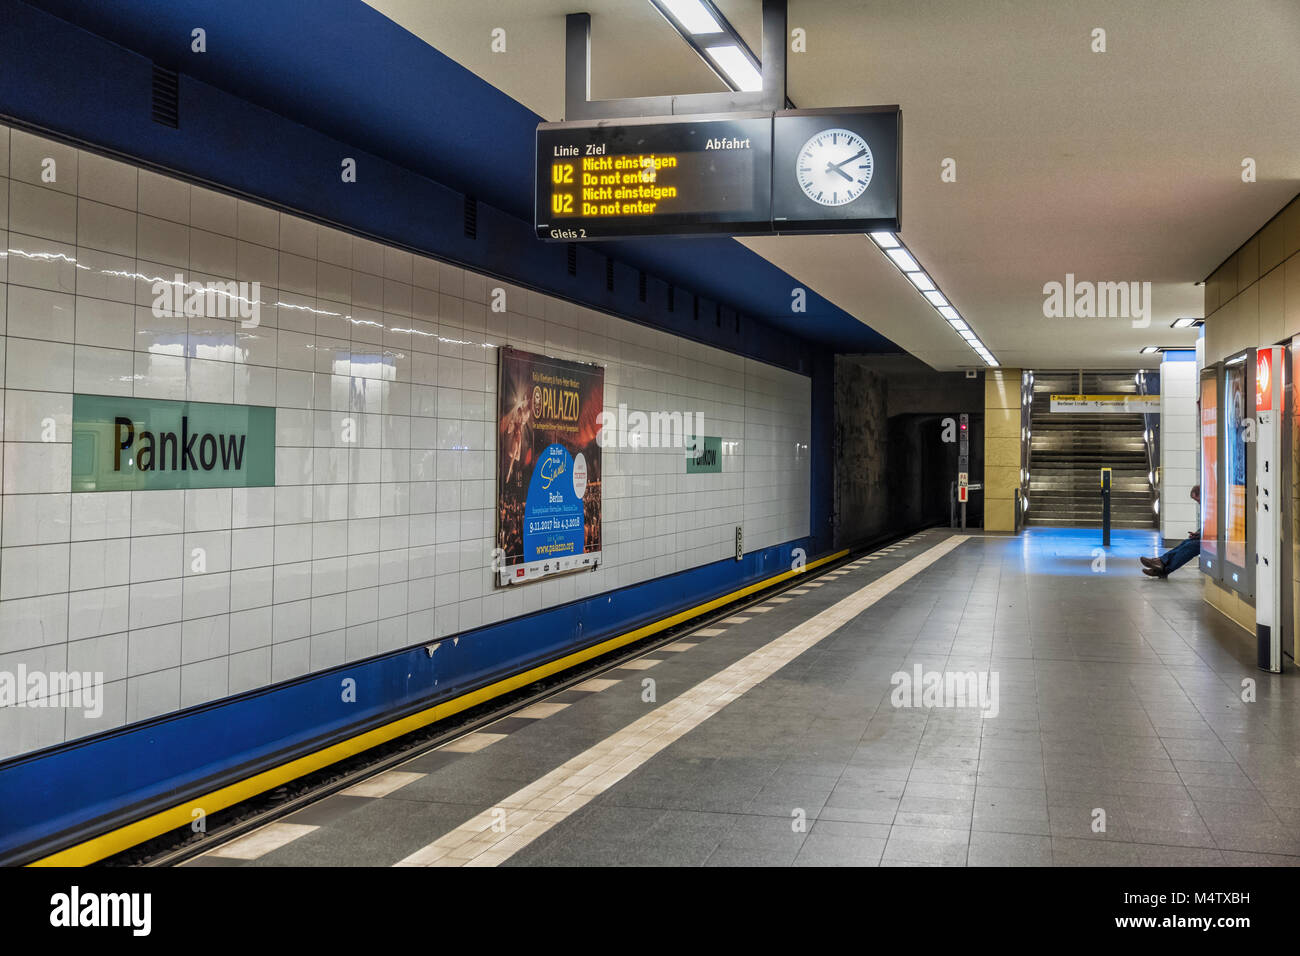 berlin pankow u bahn station platform wei e fliesen zeichen stockfoto bild 175109861 alamy. Black Bedroom Furniture Sets. Home Design Ideas